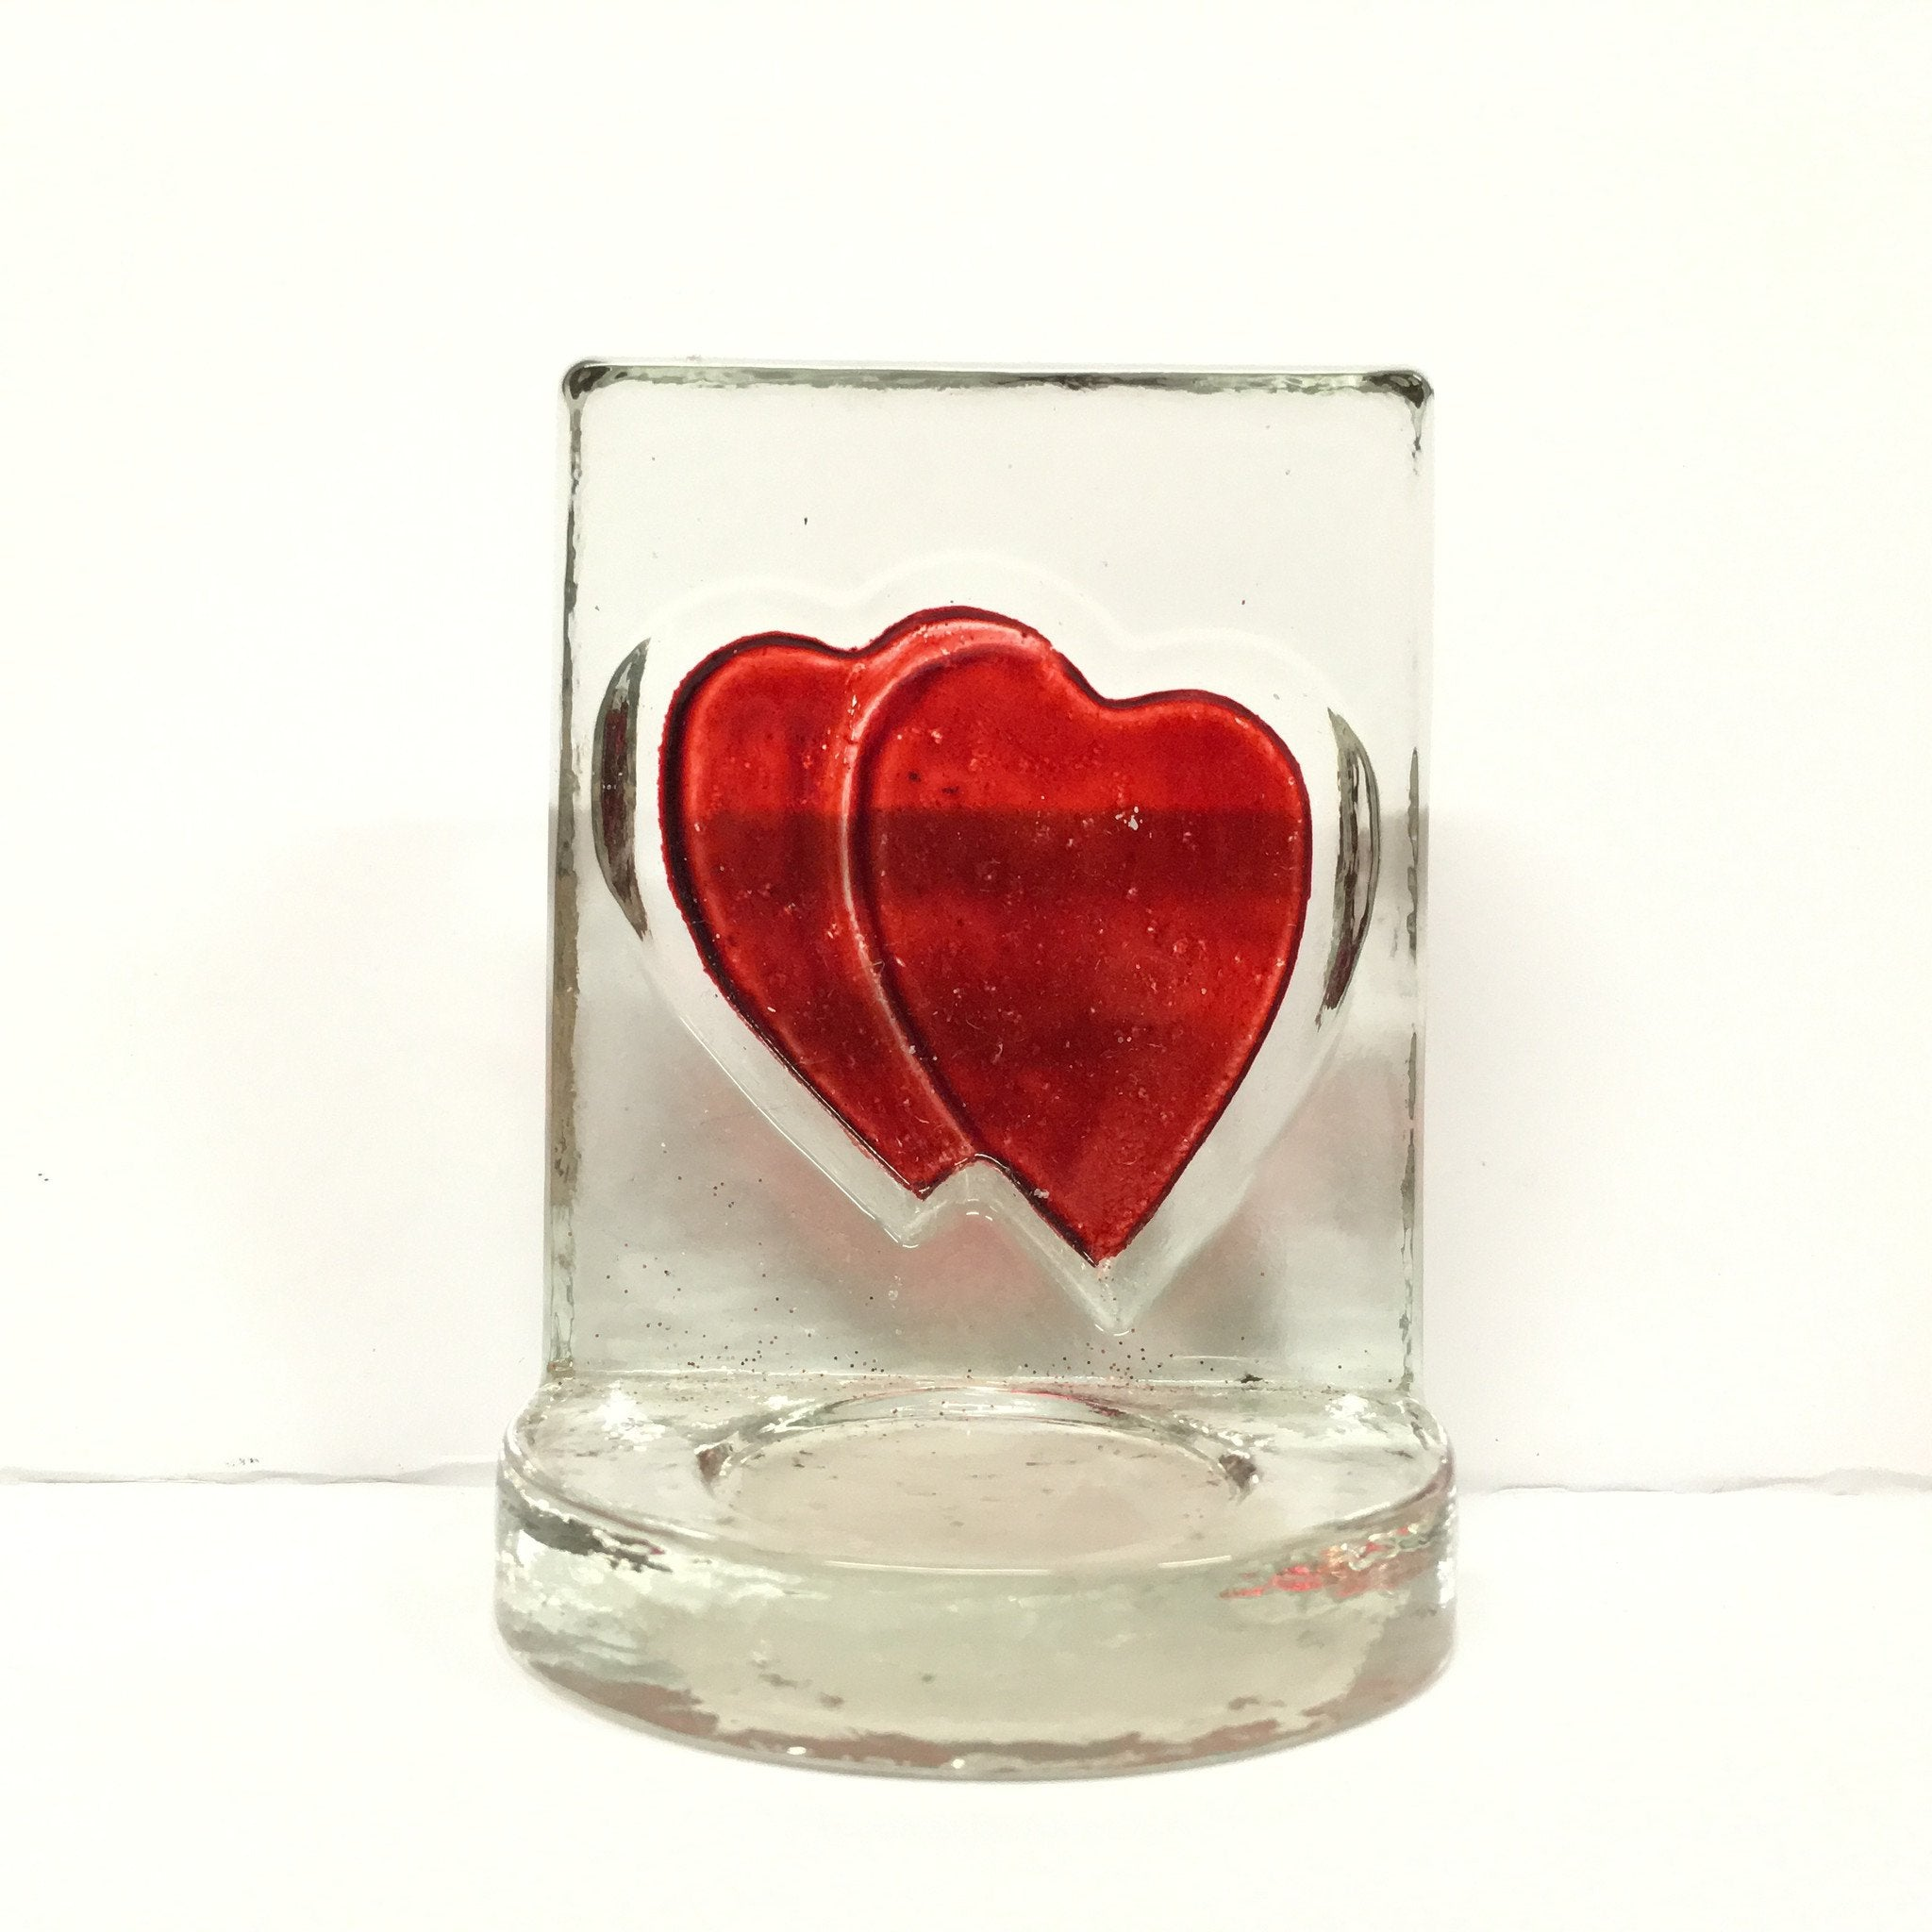 Heart Glass Tealights Holder -  - Bella-Mia Naturals All Natural Soy Candles & Lip Balms - 3